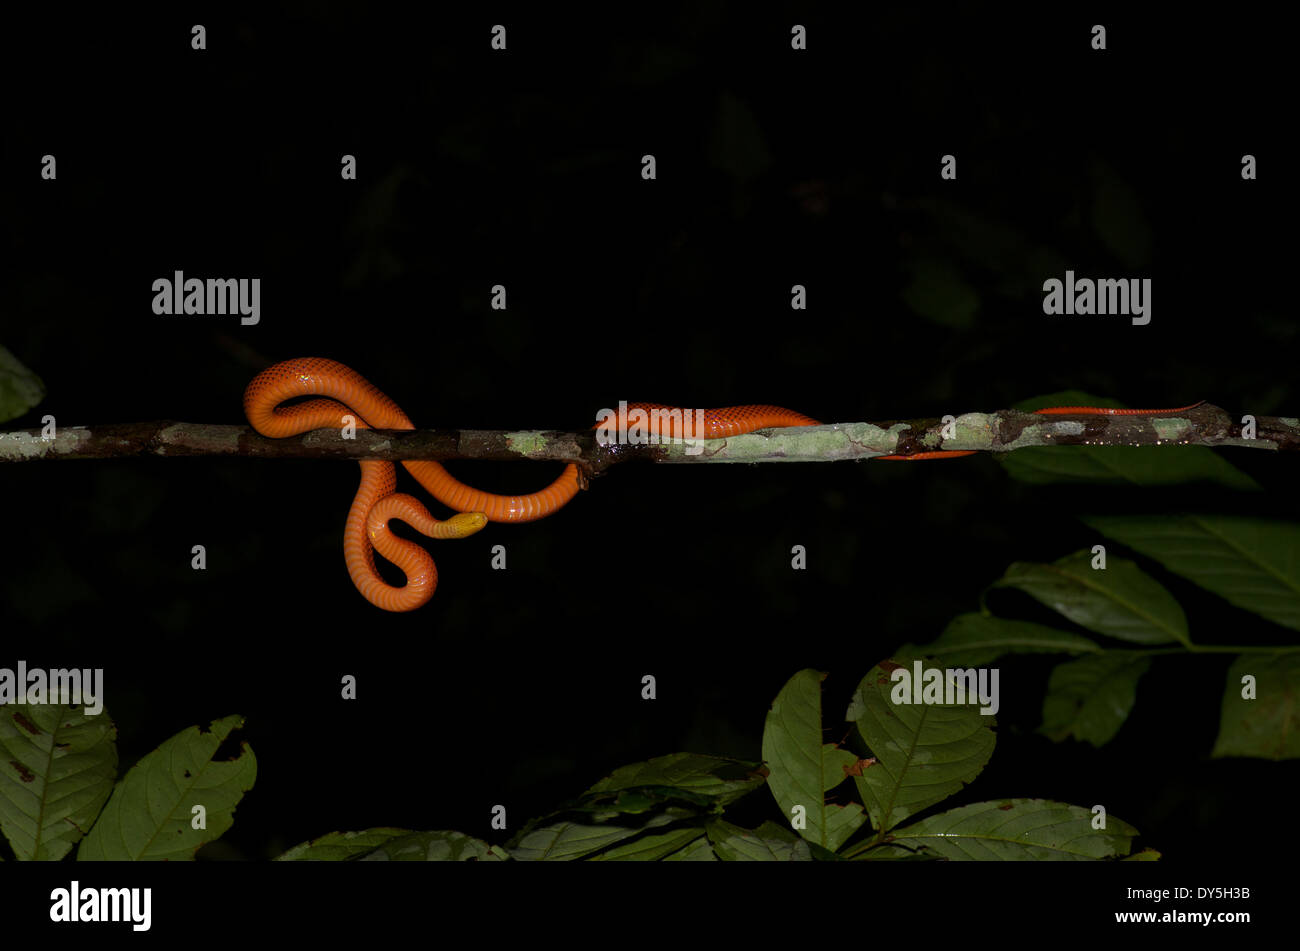 A Yellow-headed Calico Snake (Oxyrhopus formosus) on a thin branch, as seen from directly below, in the Amazon basin Stock Photo